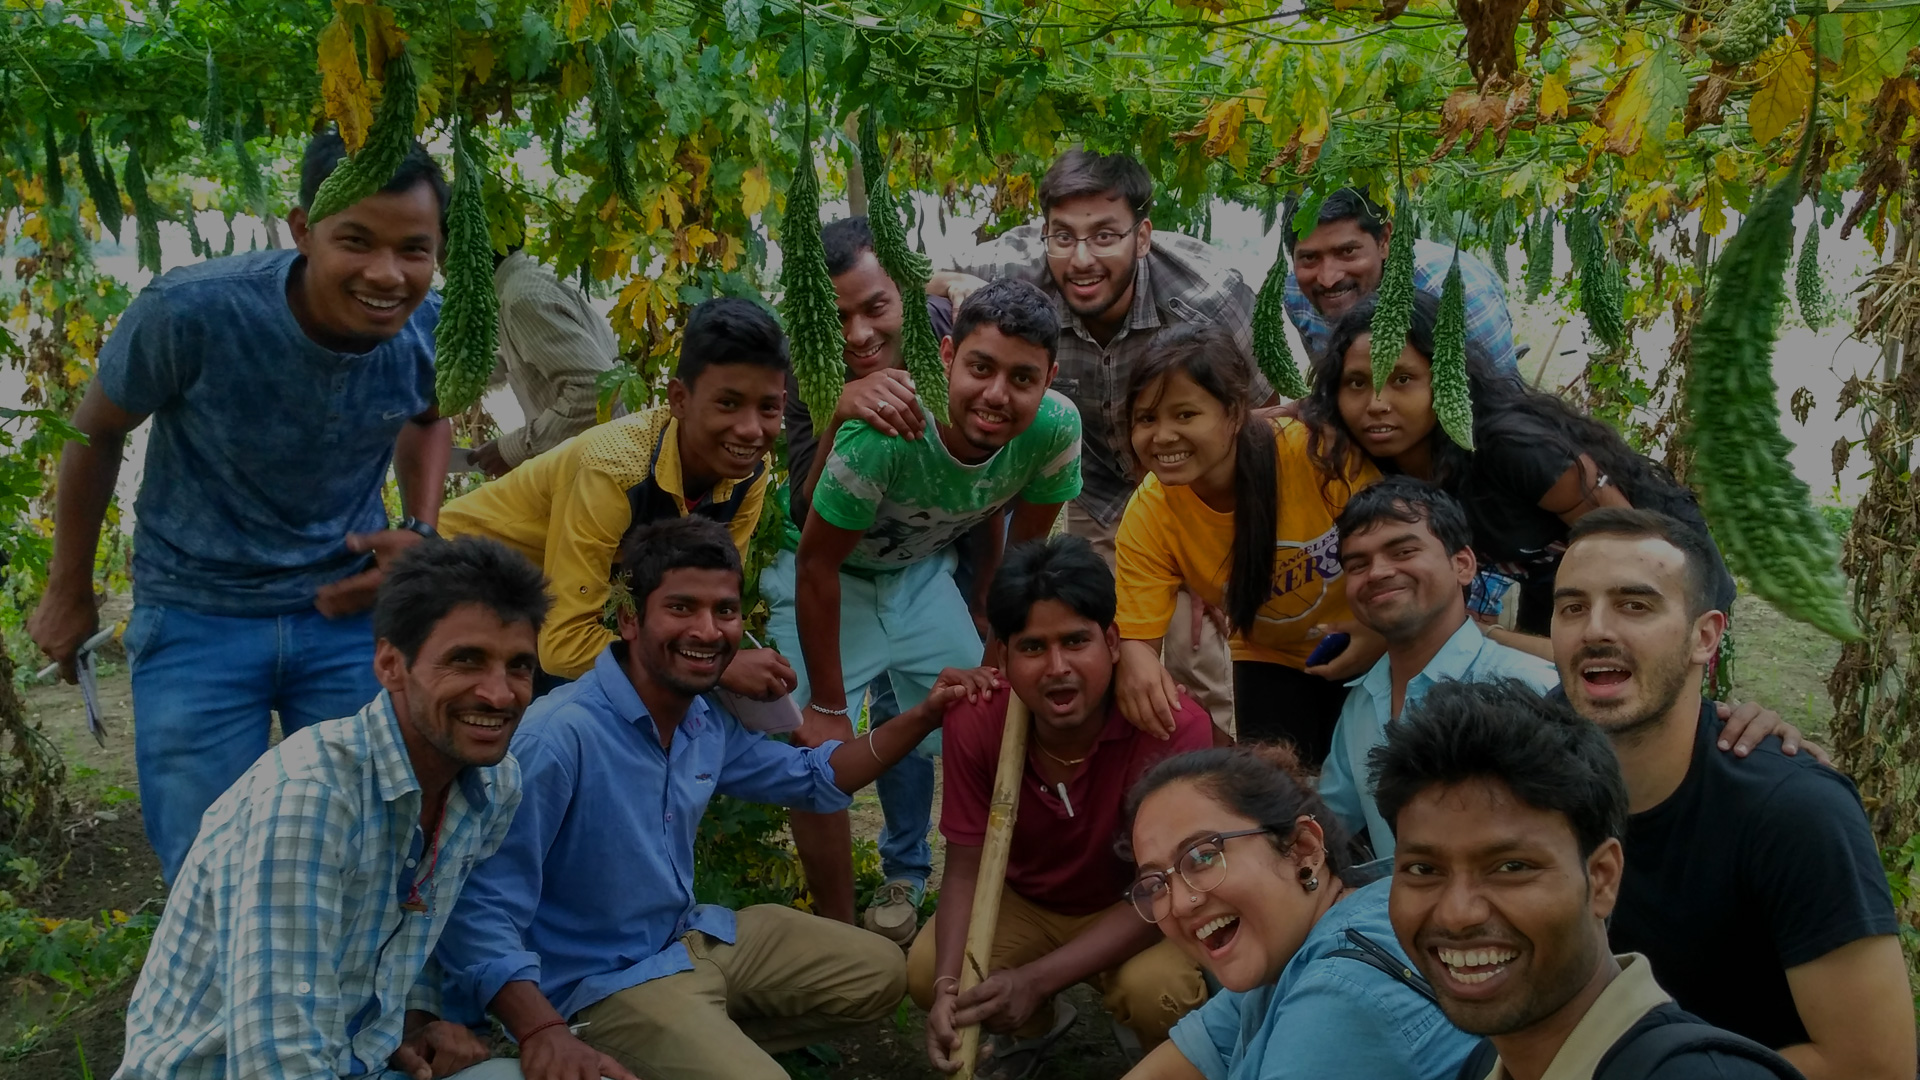 We're on a mission to incubate 10,000 entrepreneurs in rural India in the next 5 years.